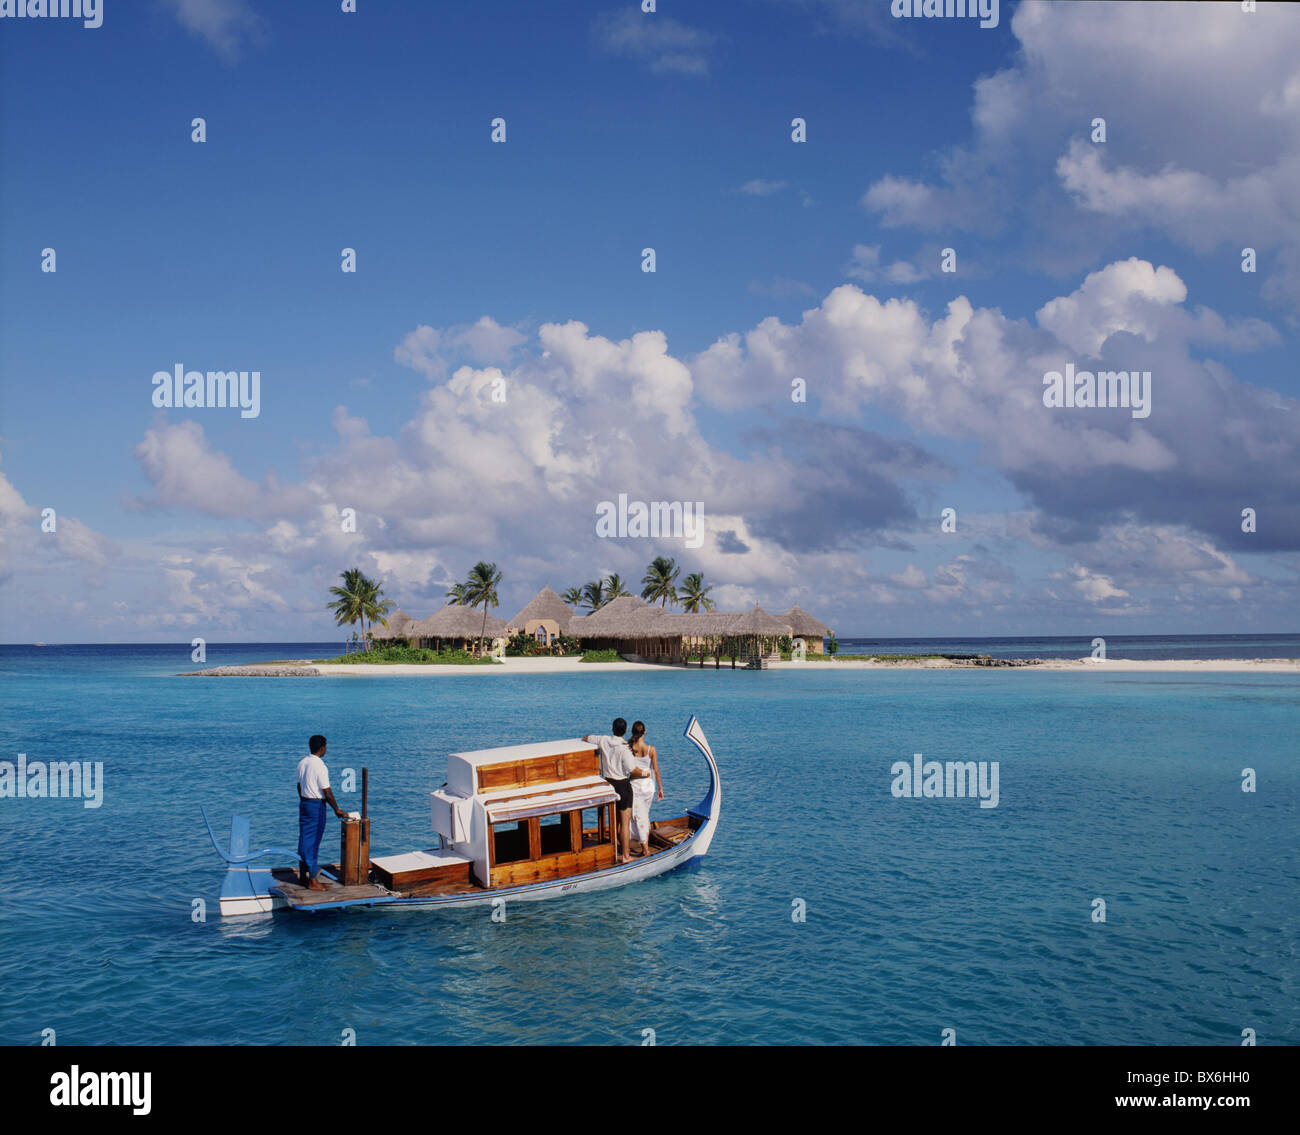 Couple ariving at the Four Seasons Spa in the Maldives, Indian Ocean, Asia - Stock Image